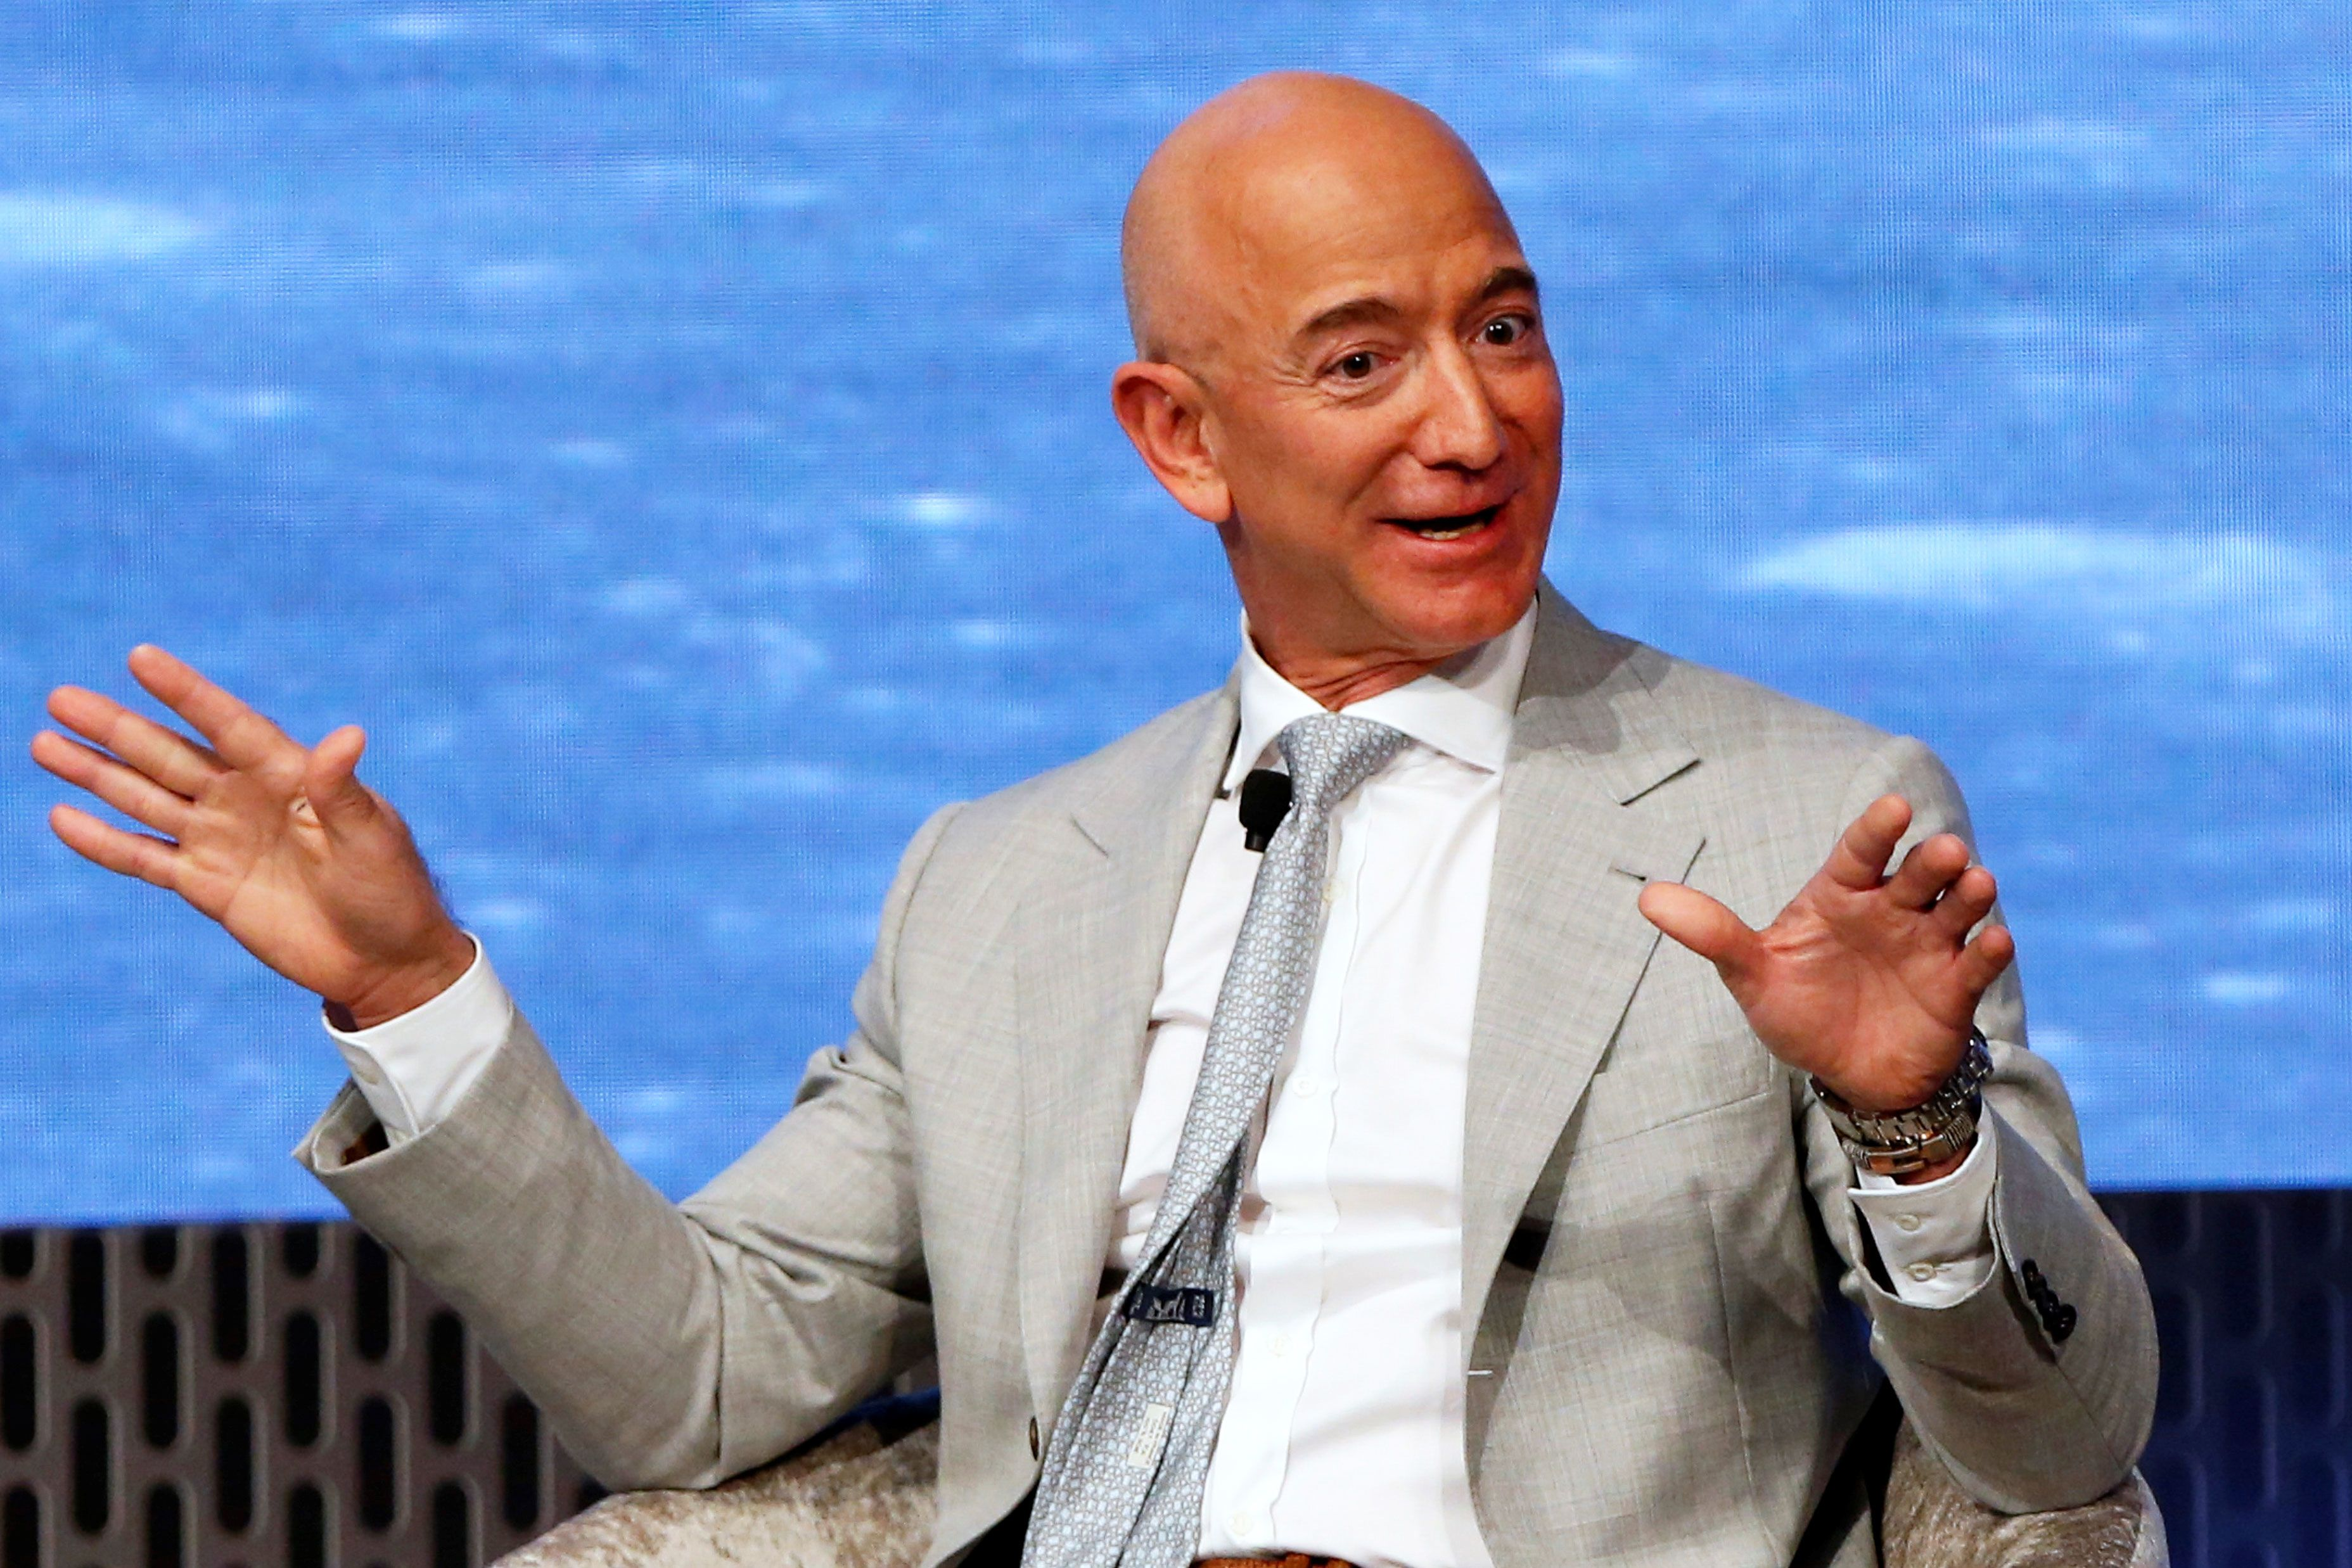 Two analysts raise expectations for Amazon days before earnings